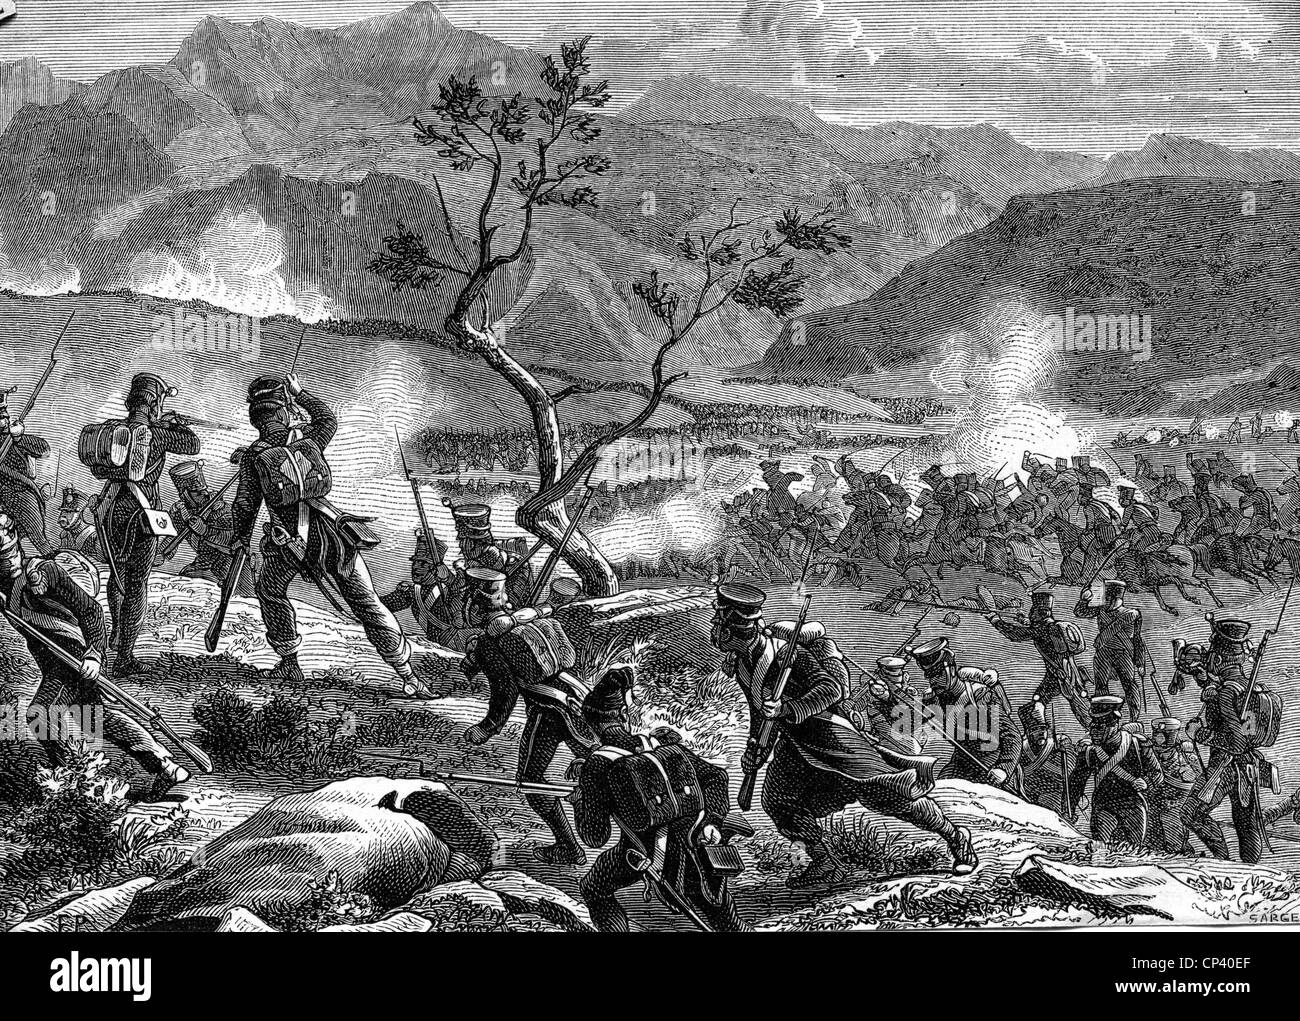 events, Peninsula War 1808 - 1814, Battle of Redinha, Portugal, 12.3.1811, charge of Ney's Division, wood engraving, - Stock Image